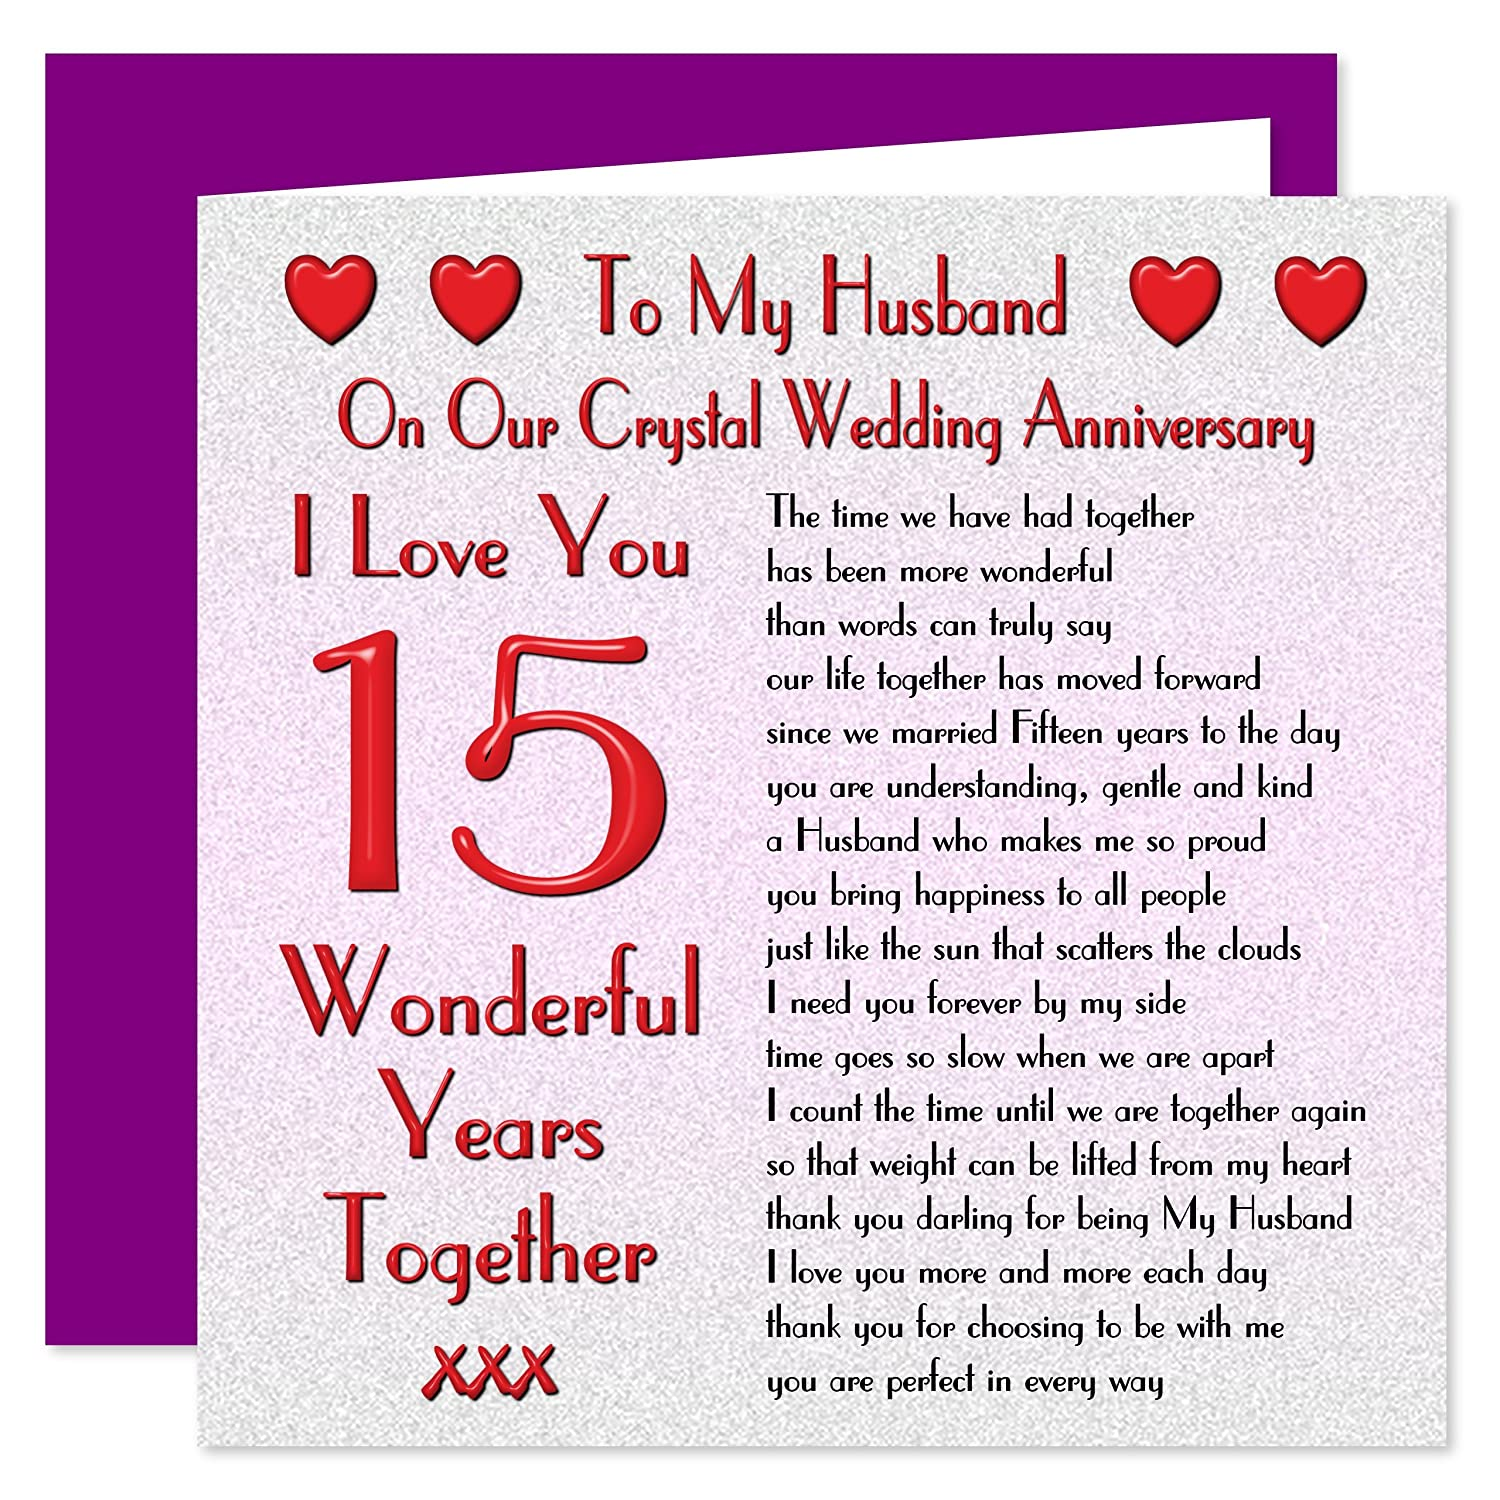 My Husband 15th Wedding Anniversary Card - On Our Crystal Anniversary - 15  Years - Sentimental Verse I Love You